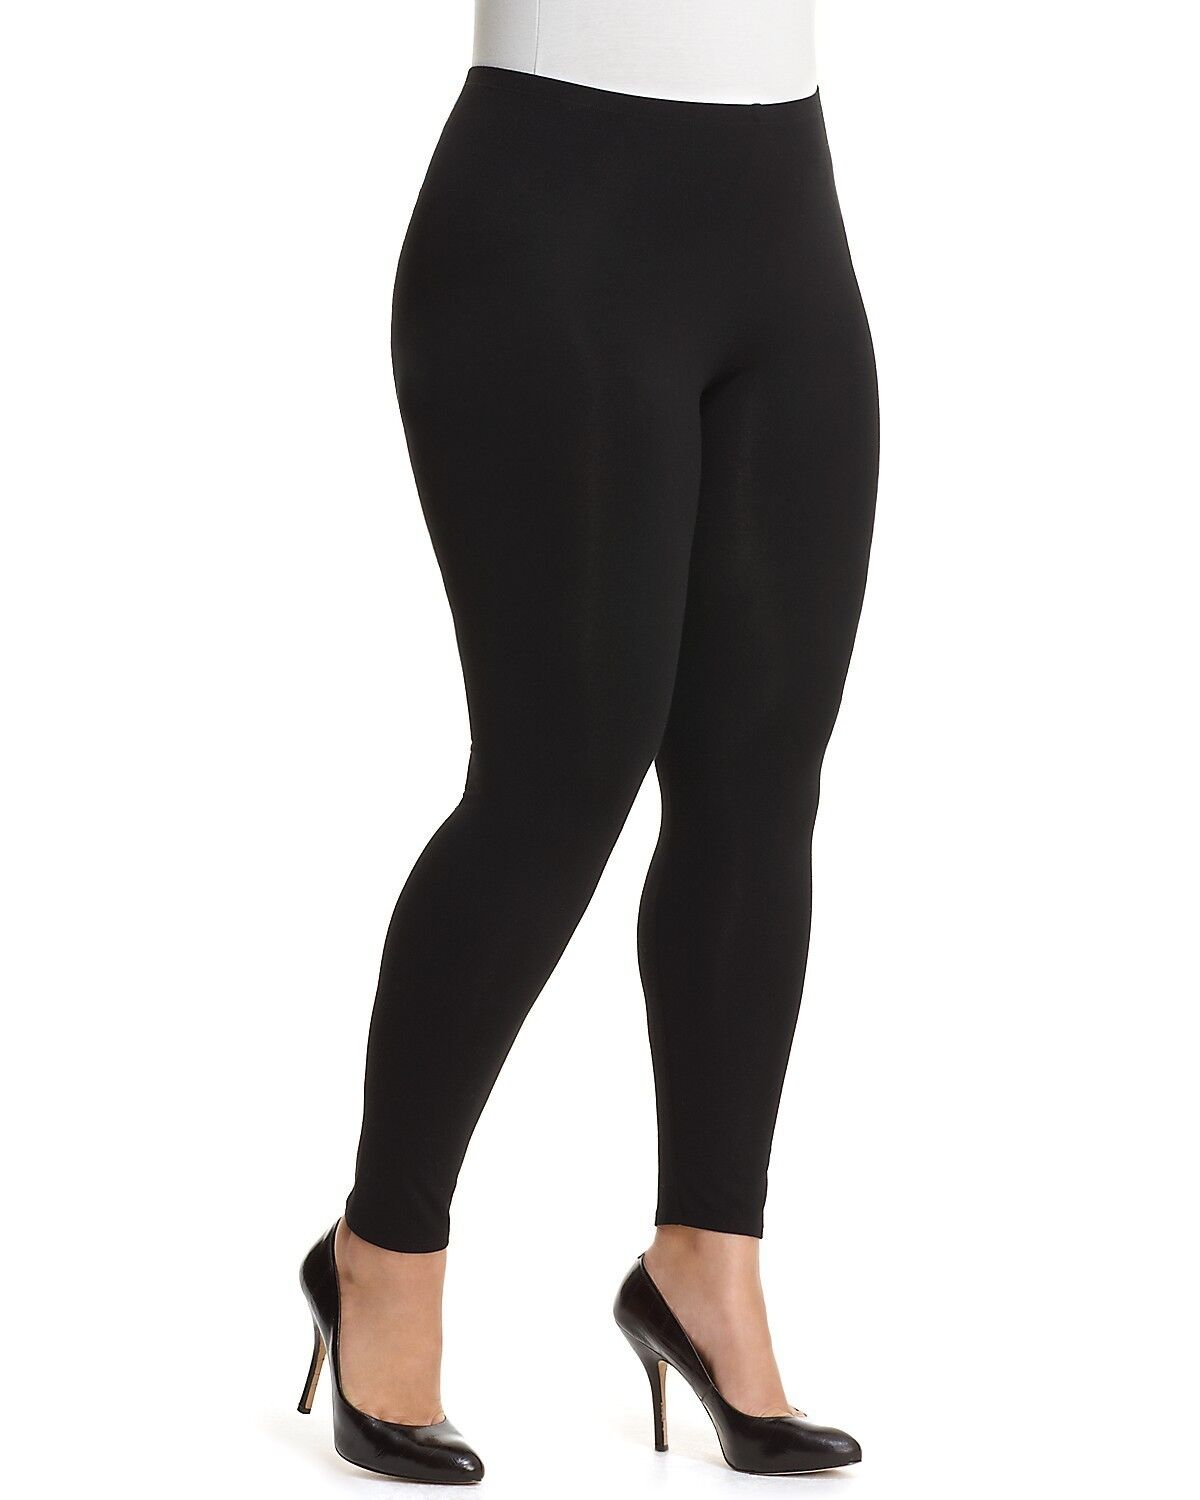 WOMEN LADIES PLUS SIZE SEAMLESS STRETCH YOGA PANTS ANKLE LENGTH LEGGINGS Clothing, Shoes & Accessories